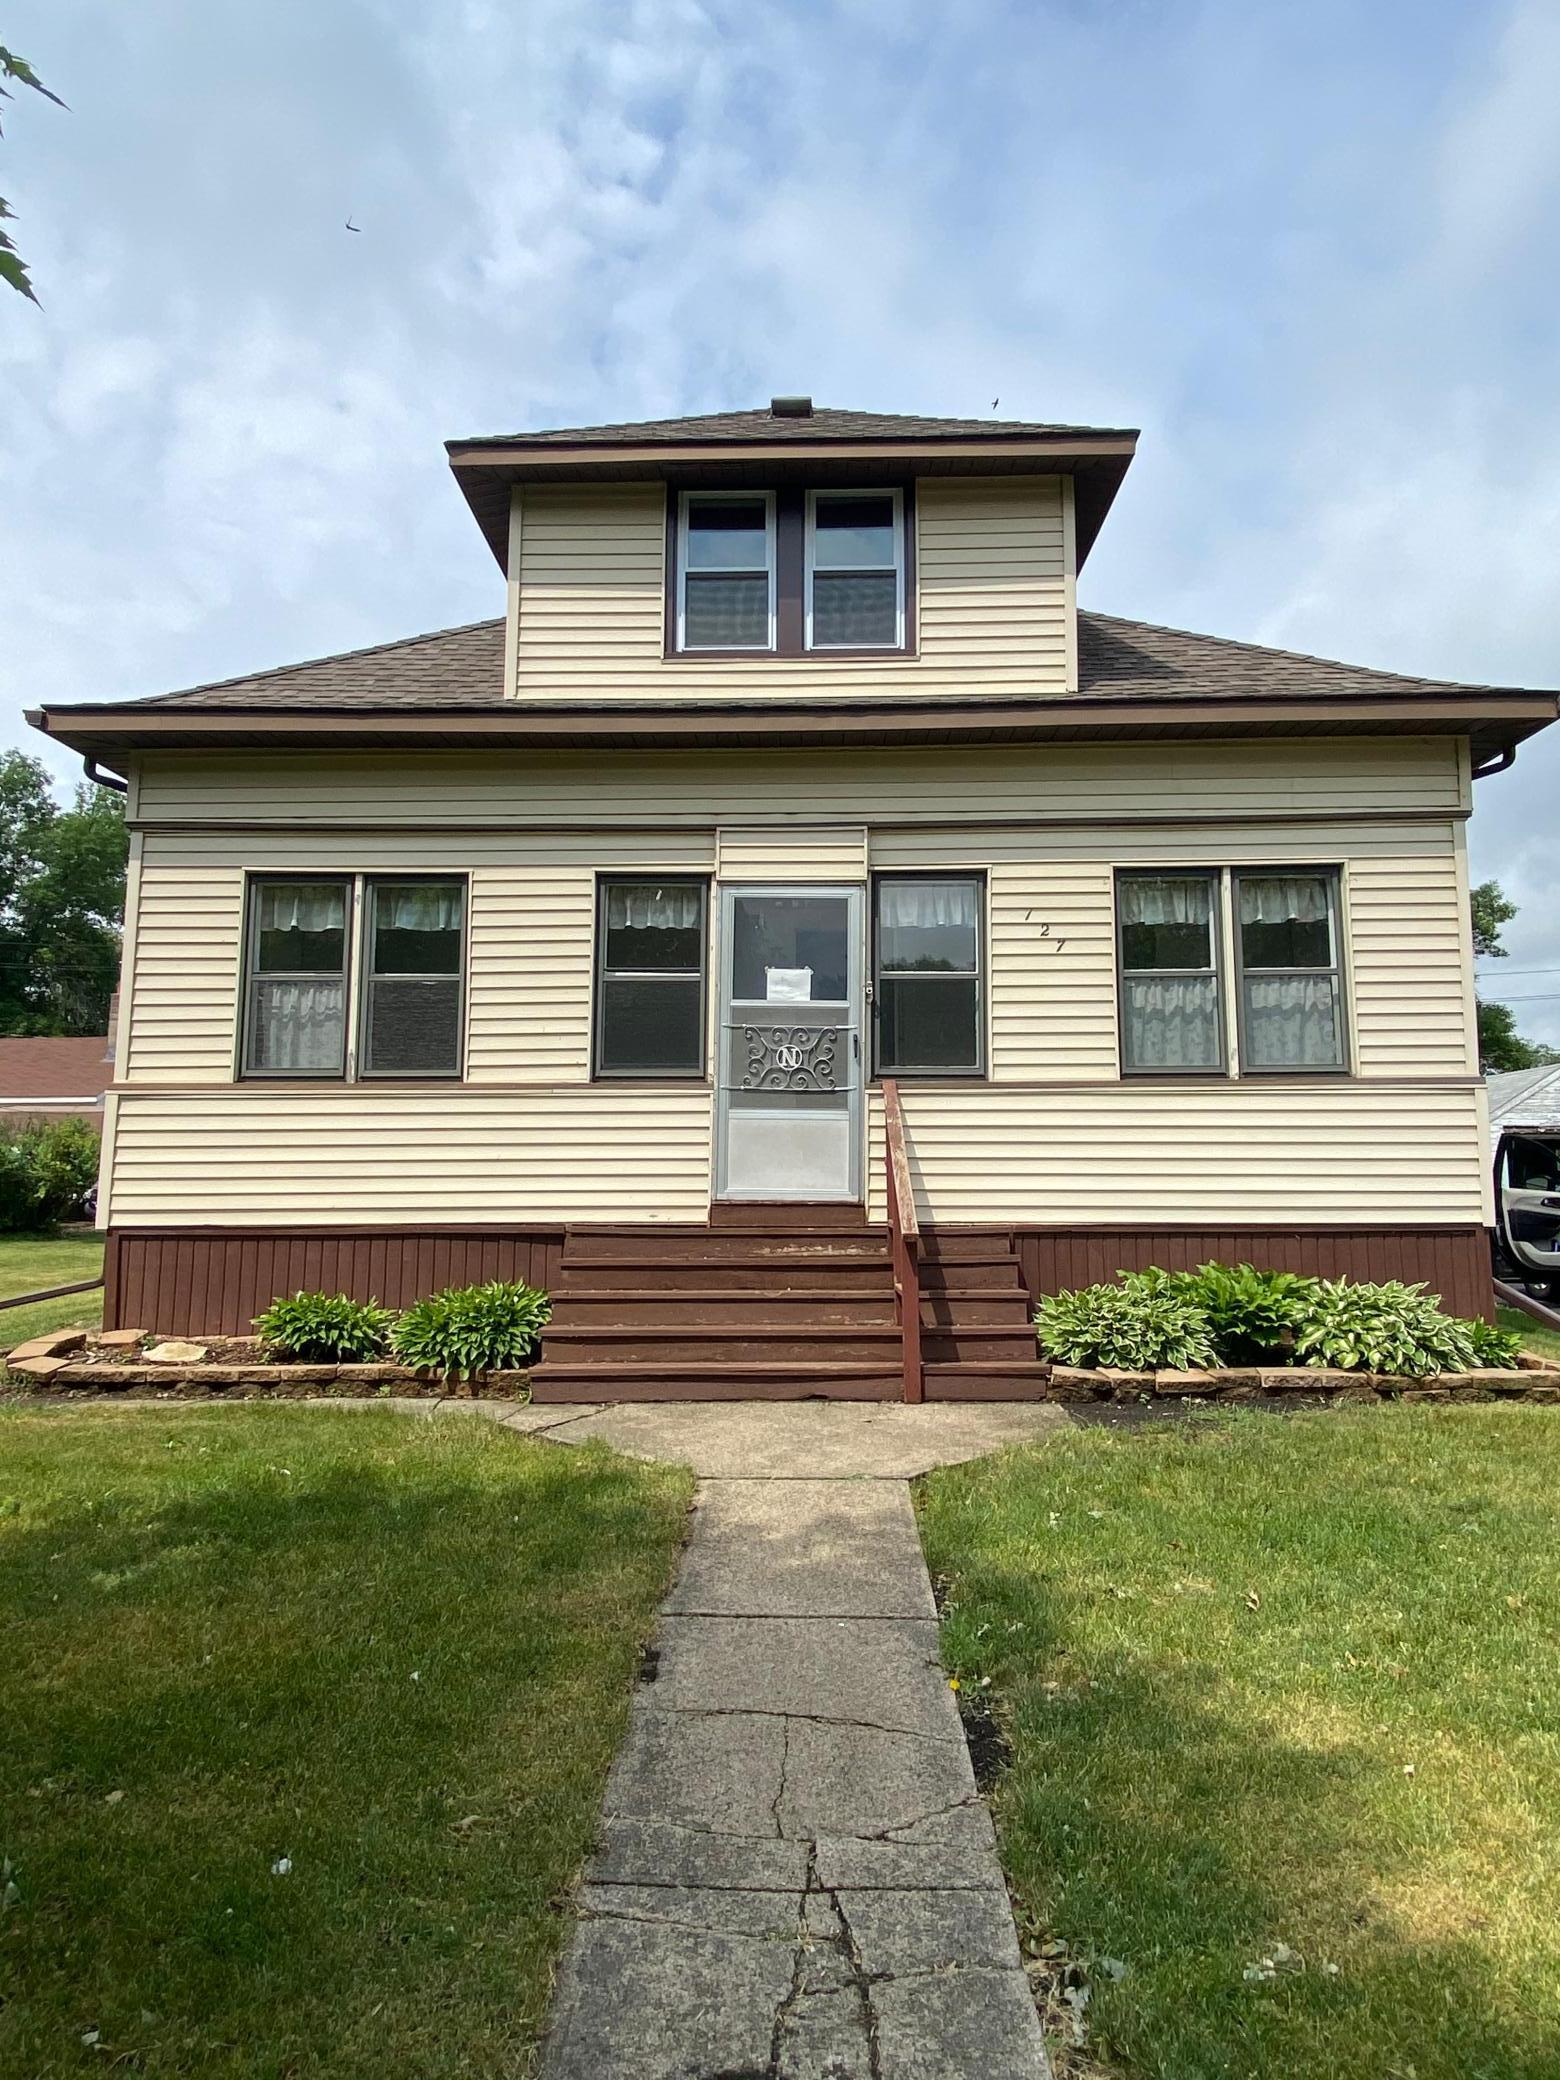 127 W 2nd Street Property Photo - Clinton, MN real estate listing